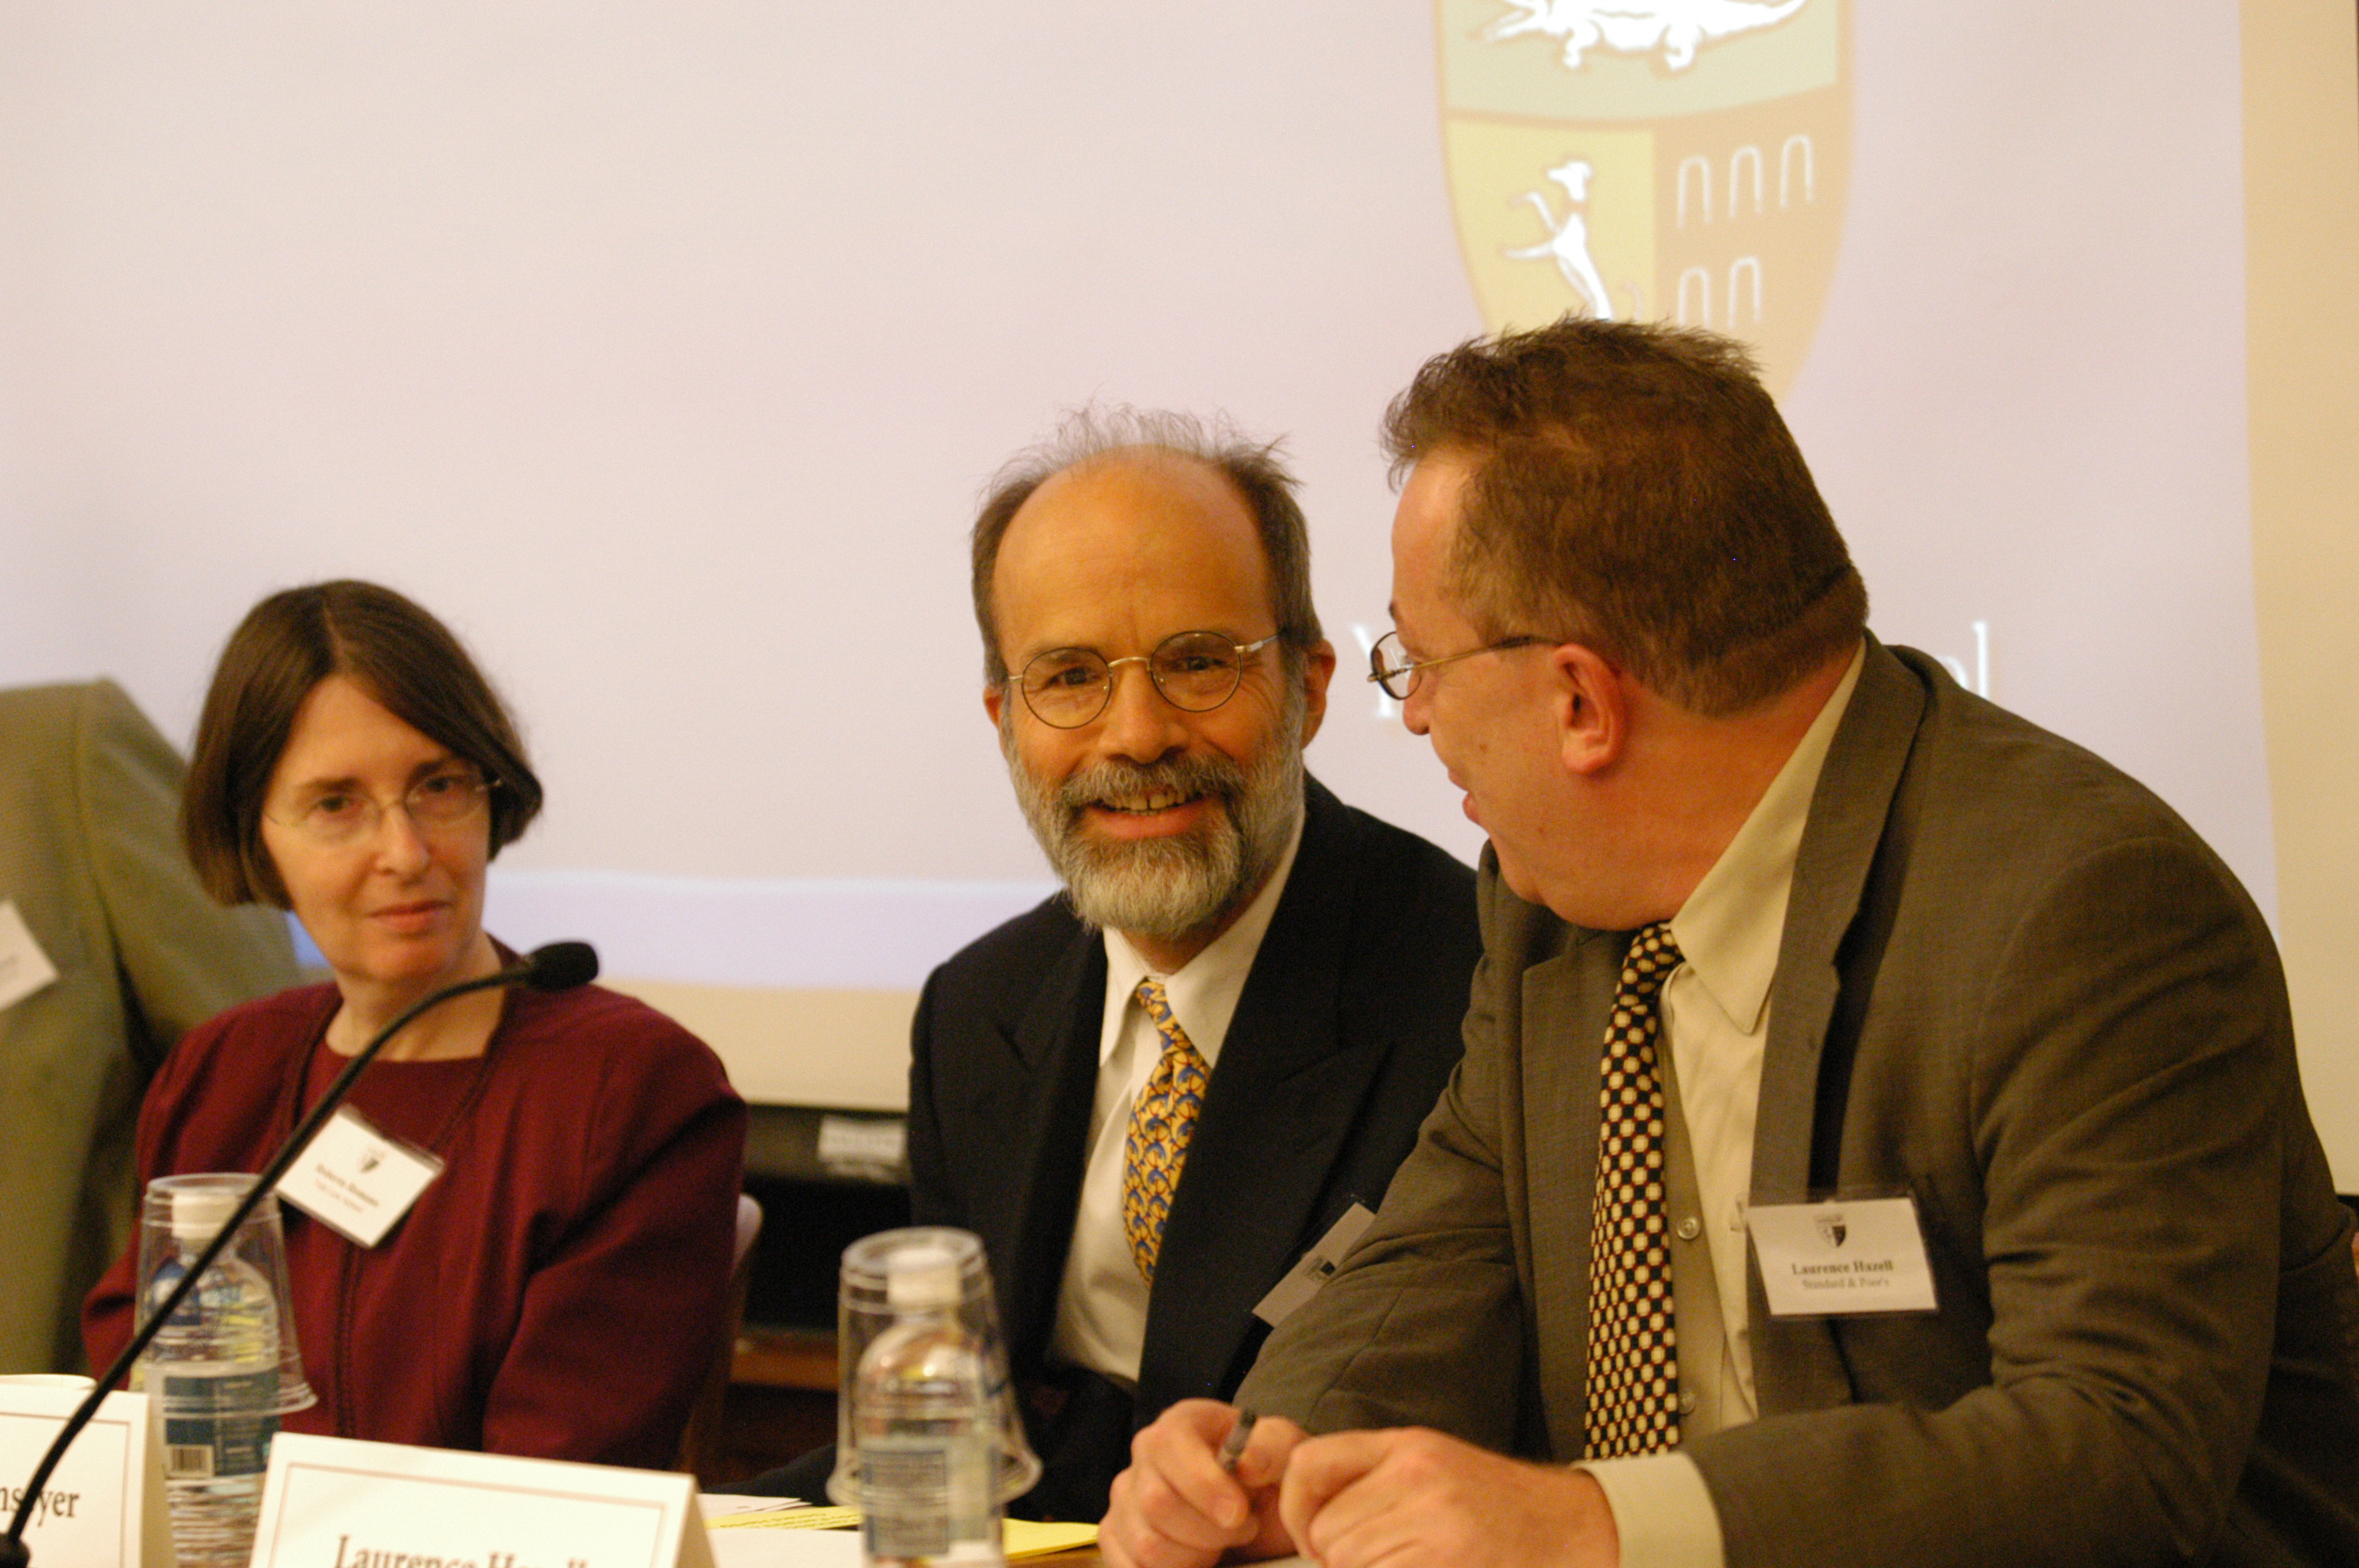 YLS Prof. and Center Dir. Roberta Romano '80, Harvard Law Prof. J. Mark Ramseyer, and Laurence Hazell